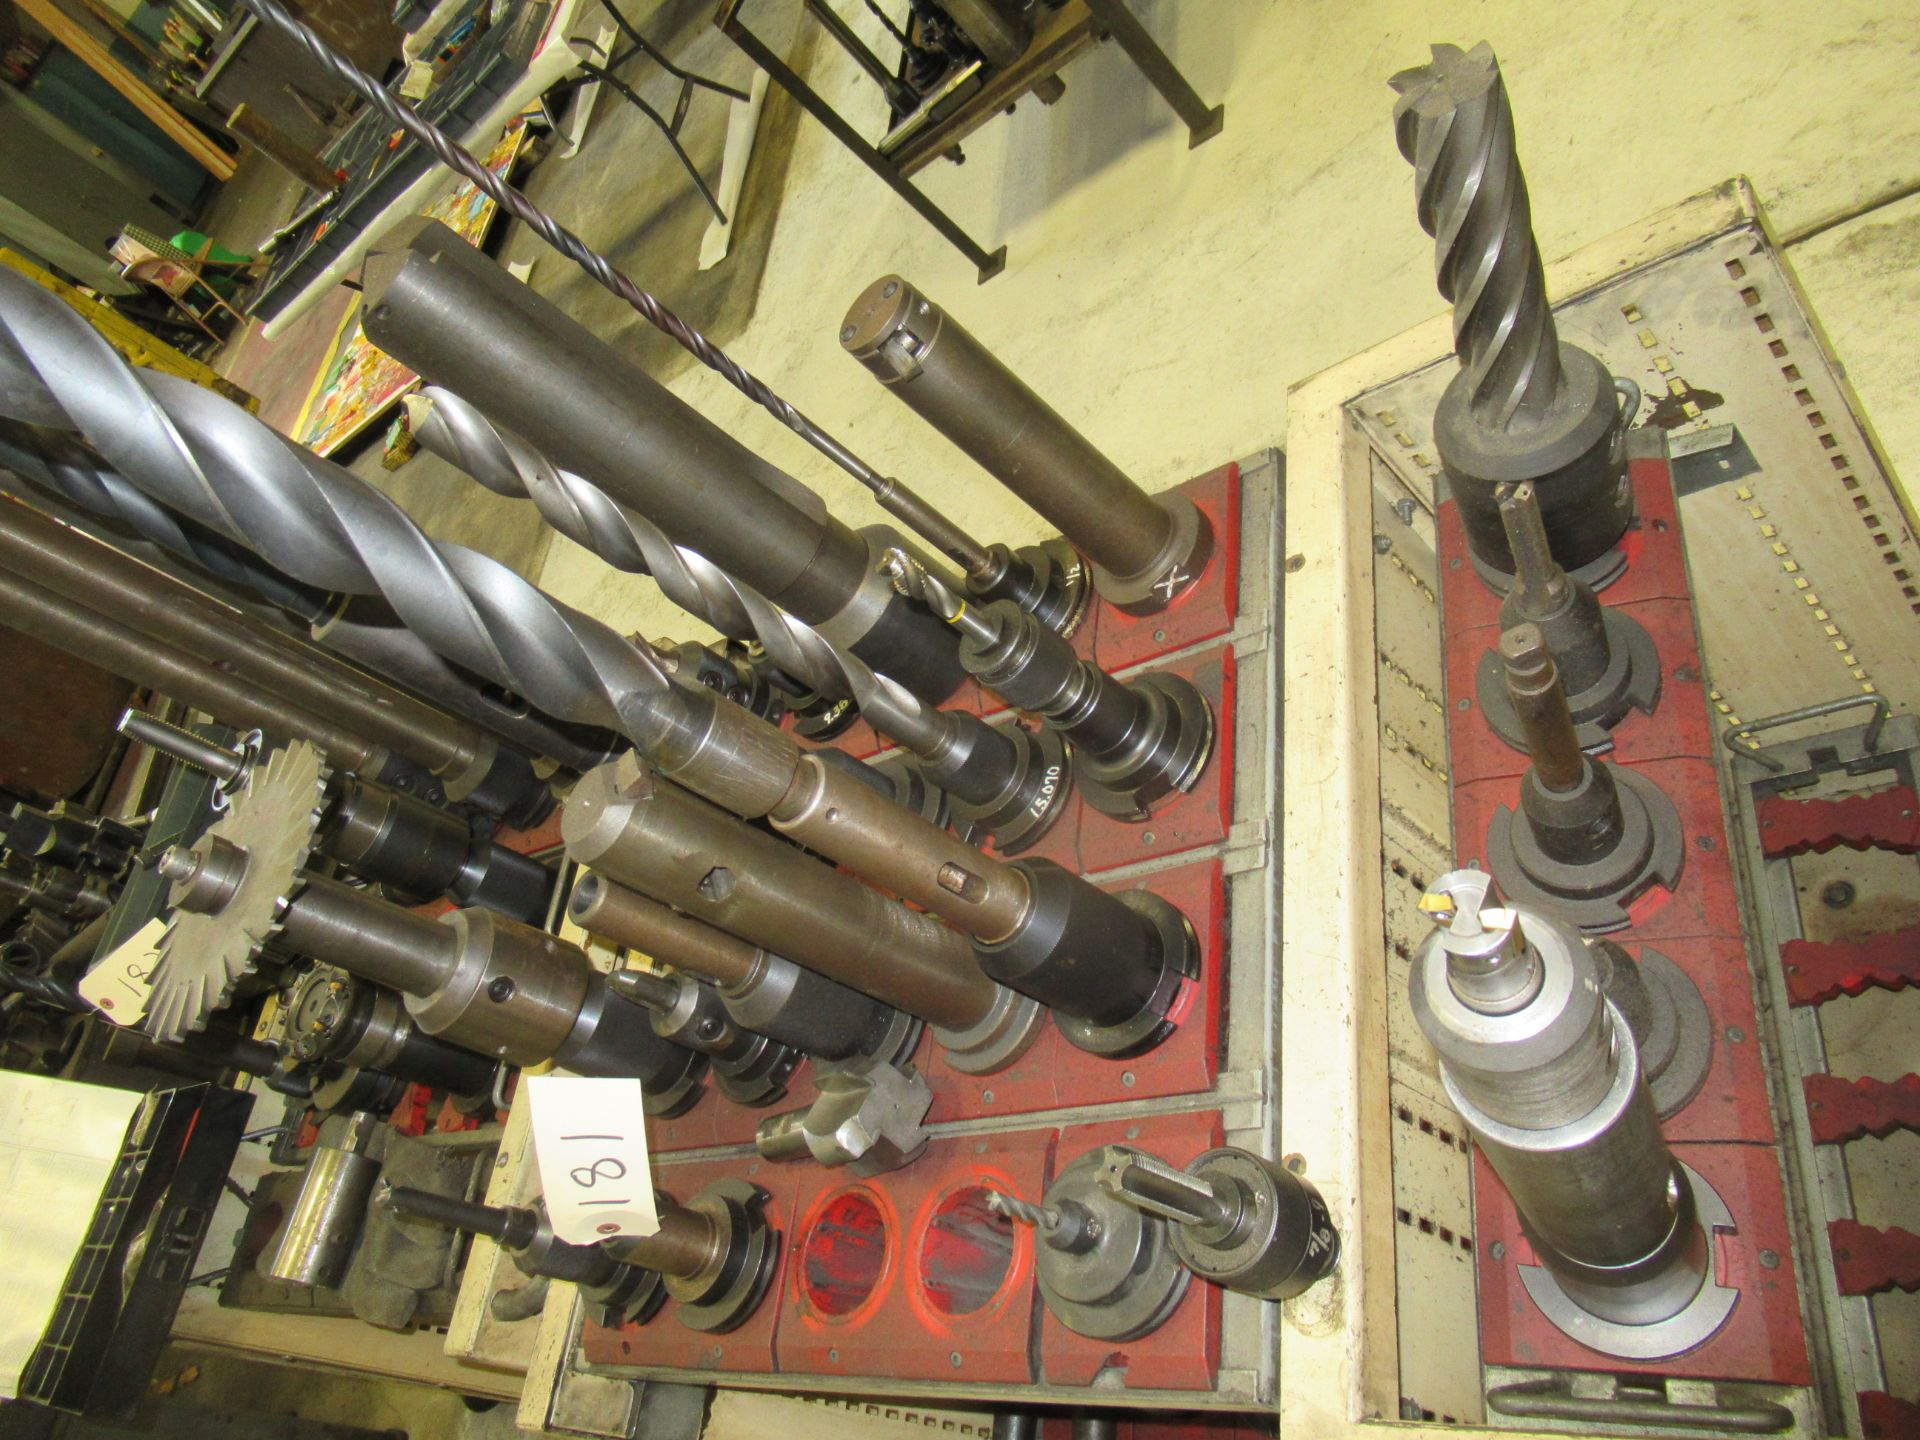 LOT OF #50 TAPER TOOL HOLDERS WITH CARTS - Image 2 of 3